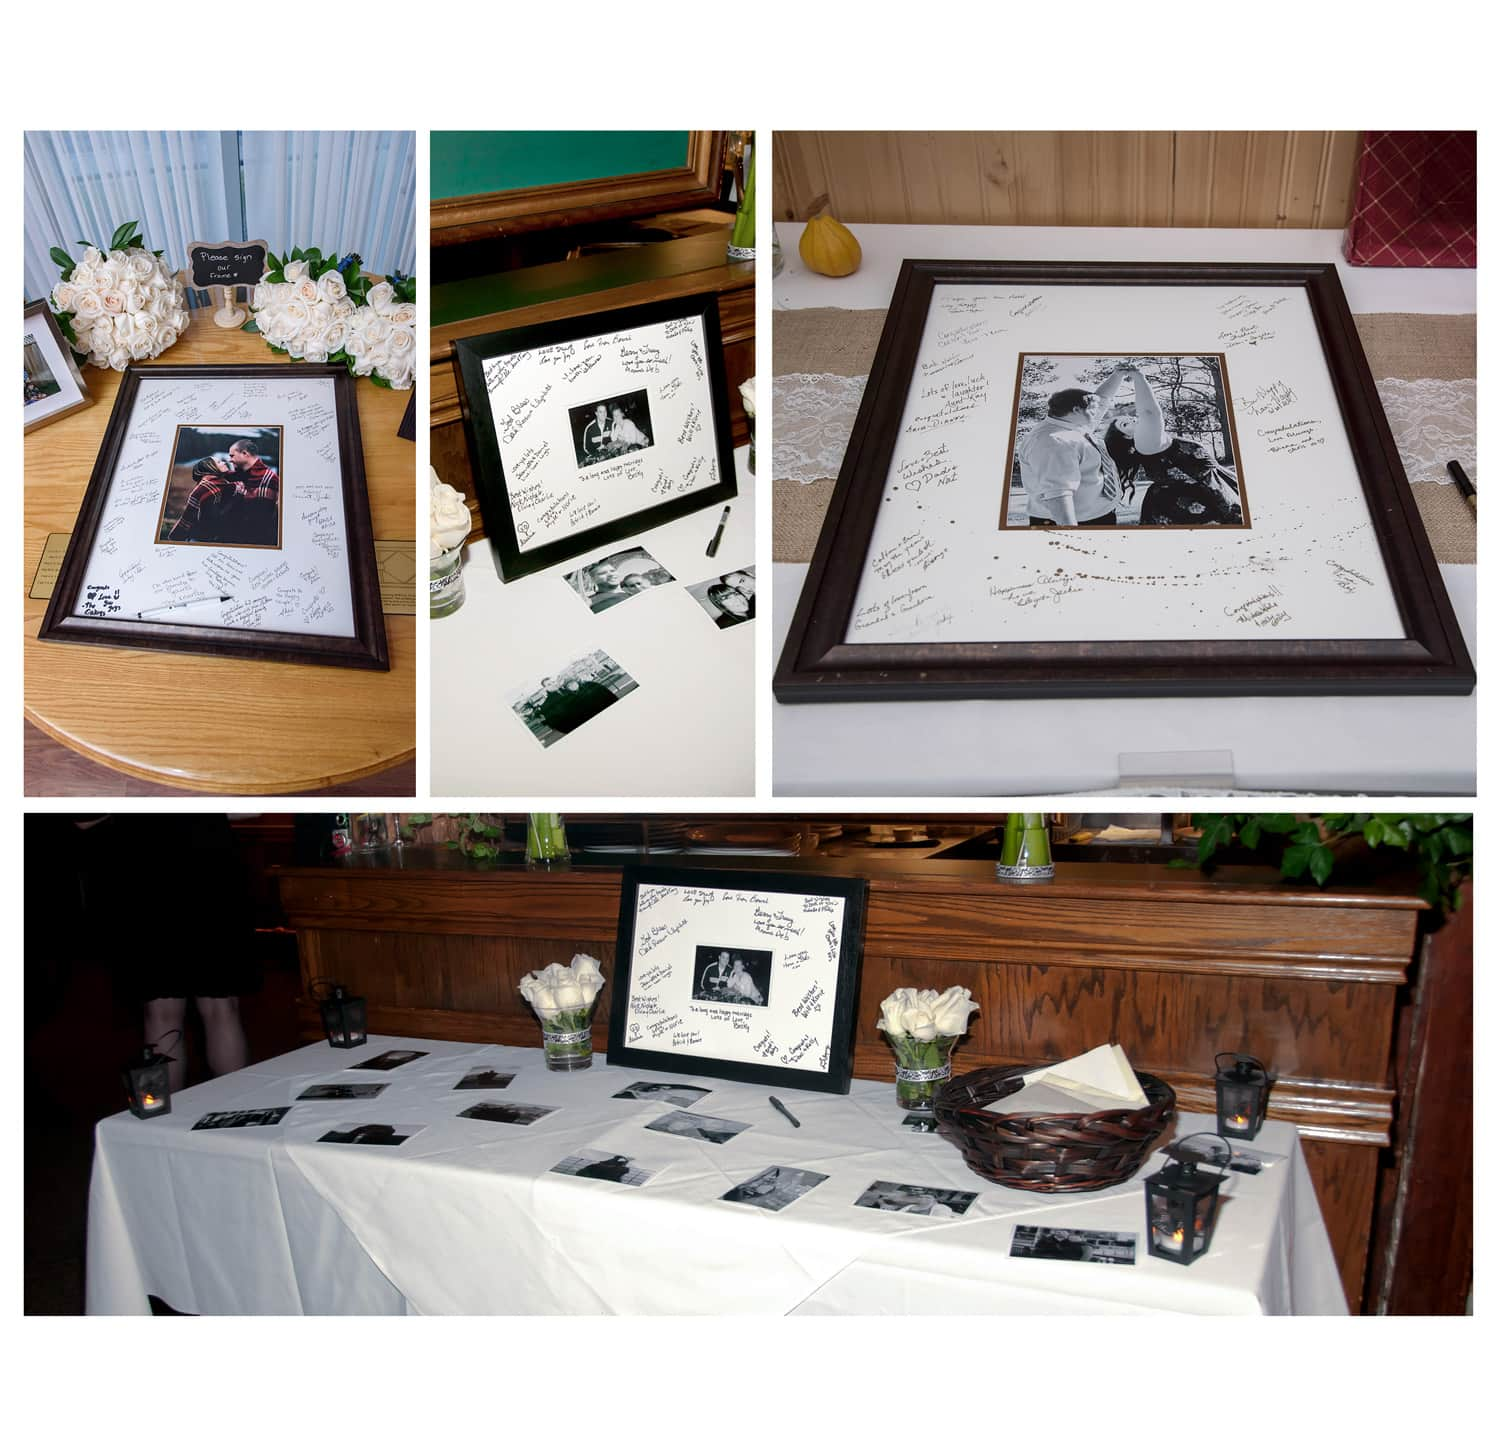 a glass frame style wedding guest book for wedding guests to sign